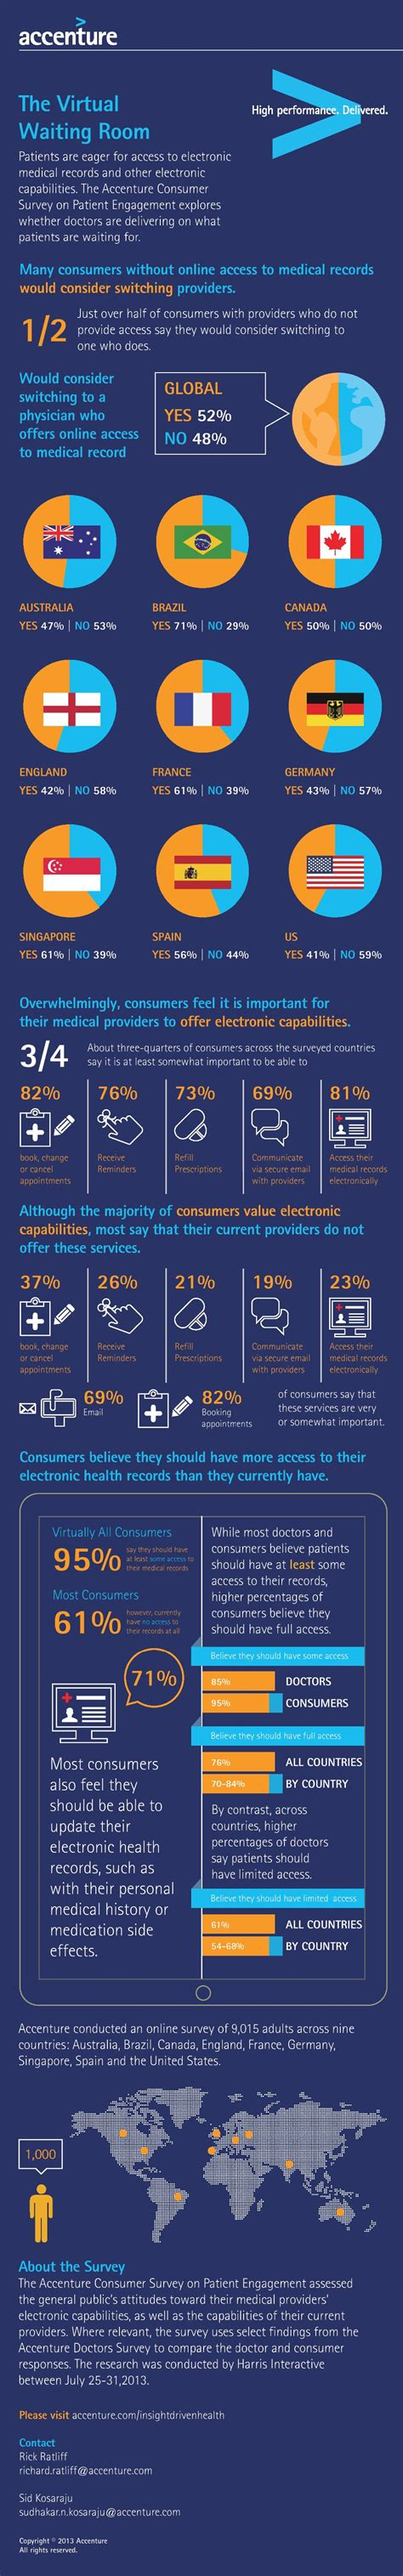 Access To Records Infographic Patients Want Access To Their Electronic Records